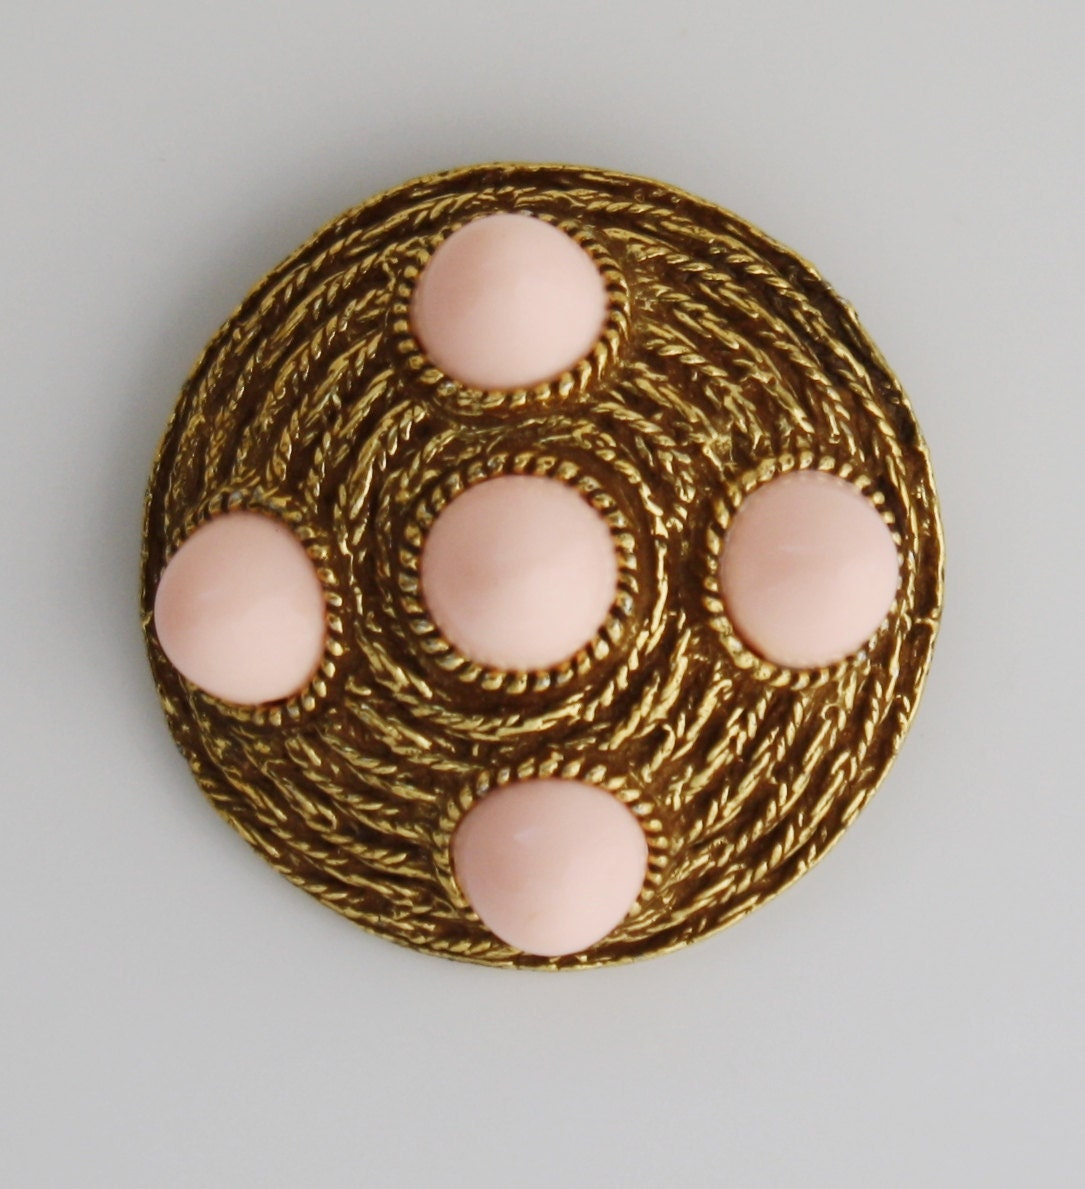 Vintage Gold & Pink Brooch from by tootsystreasures on Etsy from etsy.com